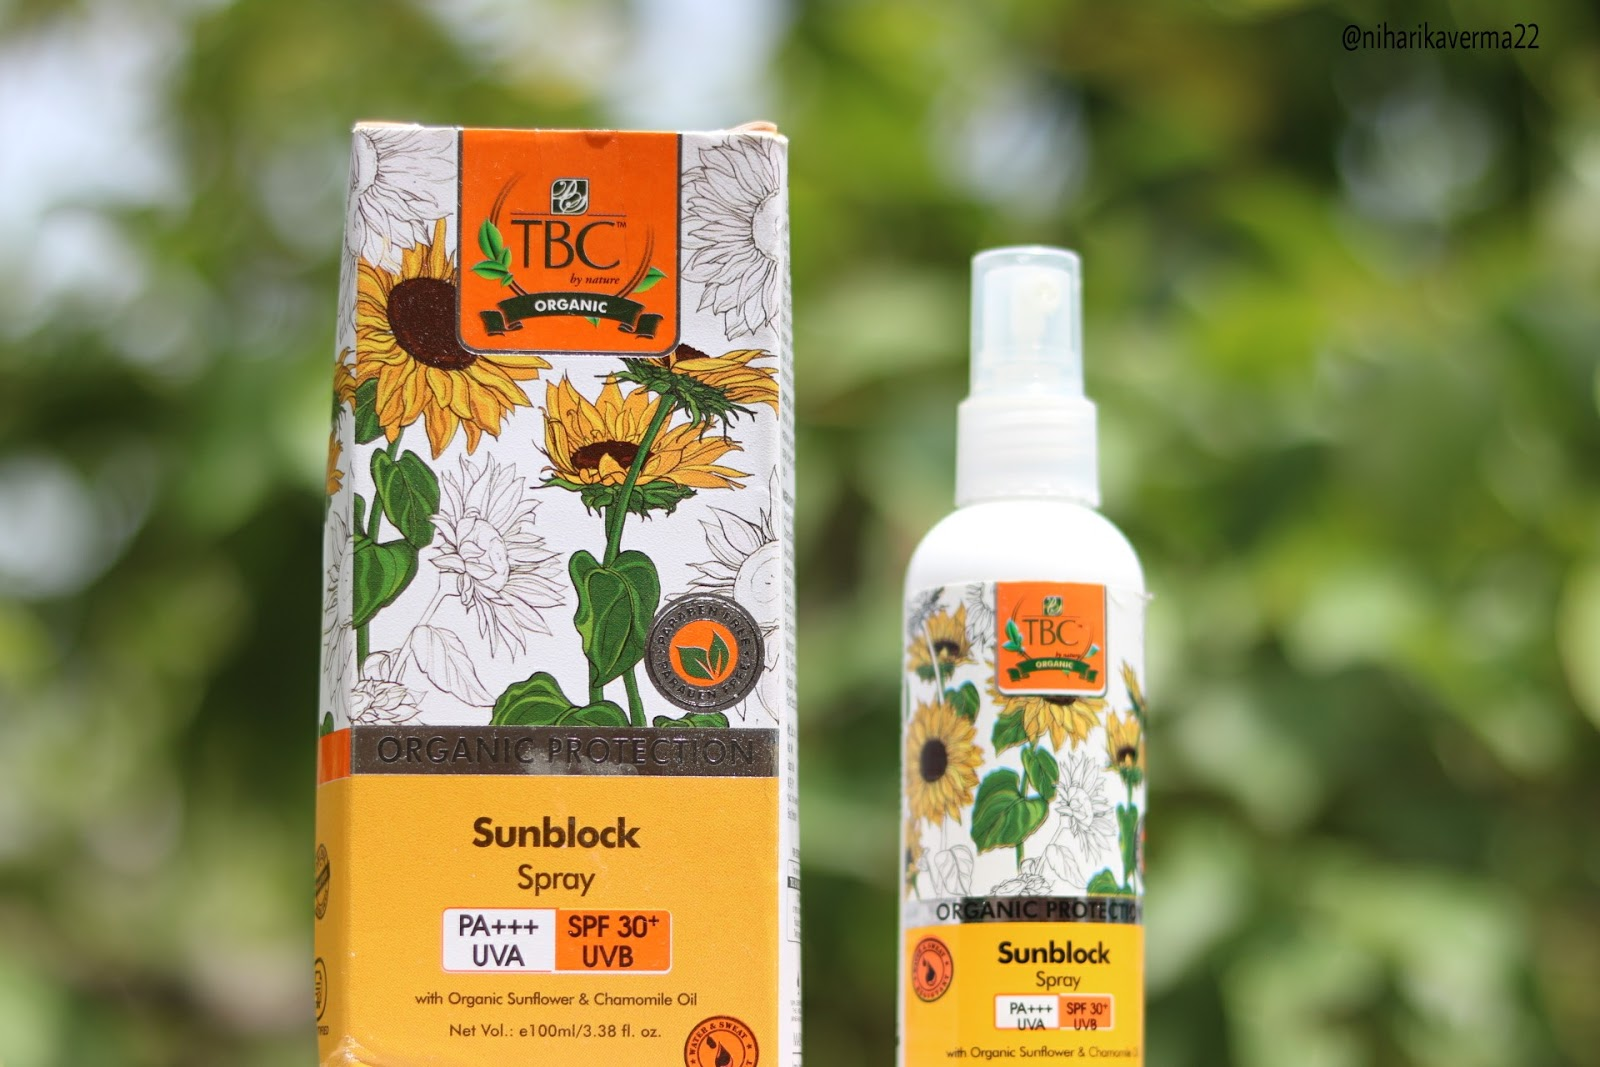 TBC By Nature Sunblock Spray SPF 30+